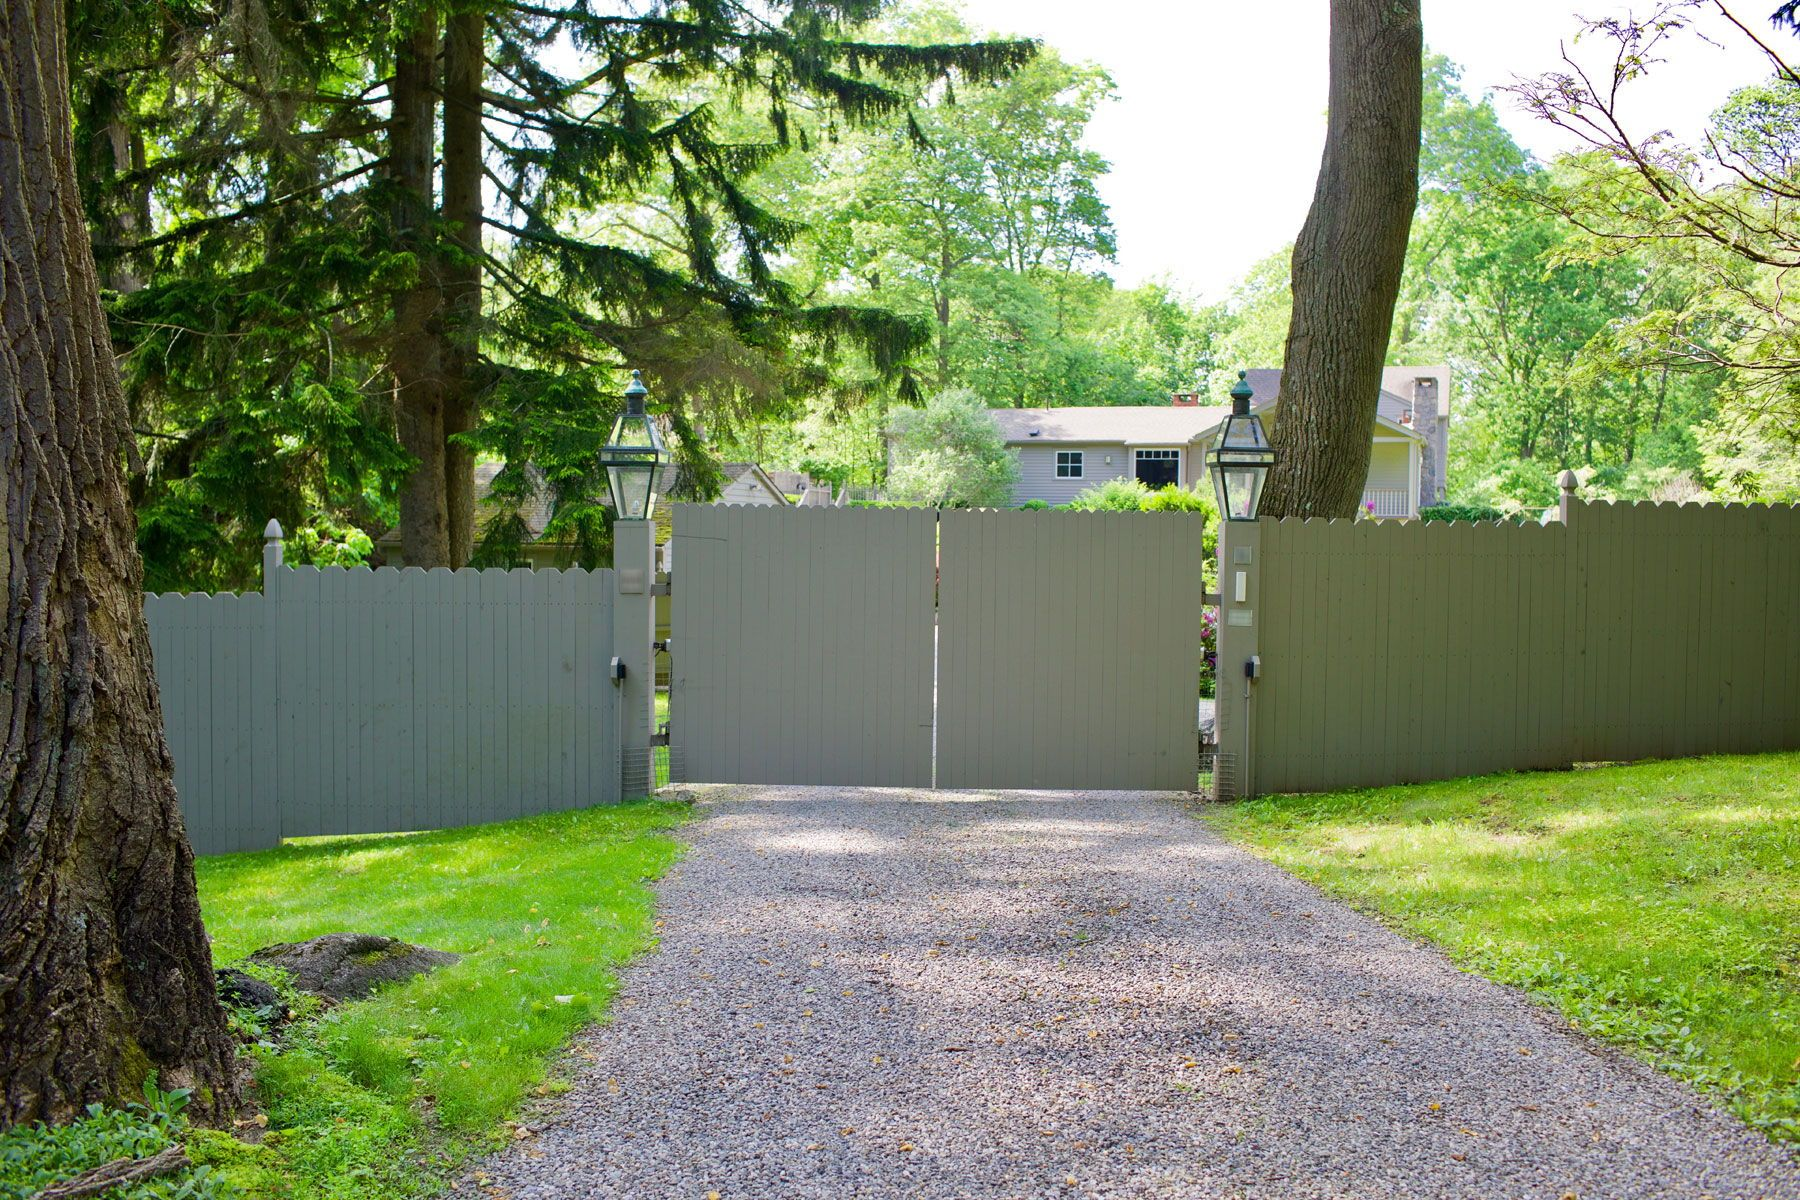 Solid Front Driveway Gate With Matching Property Fence For Utmost Privacy Tri State Gate Bedford Hills Ny Driveway Gate Wooden Gates Driveway Bedford Hills